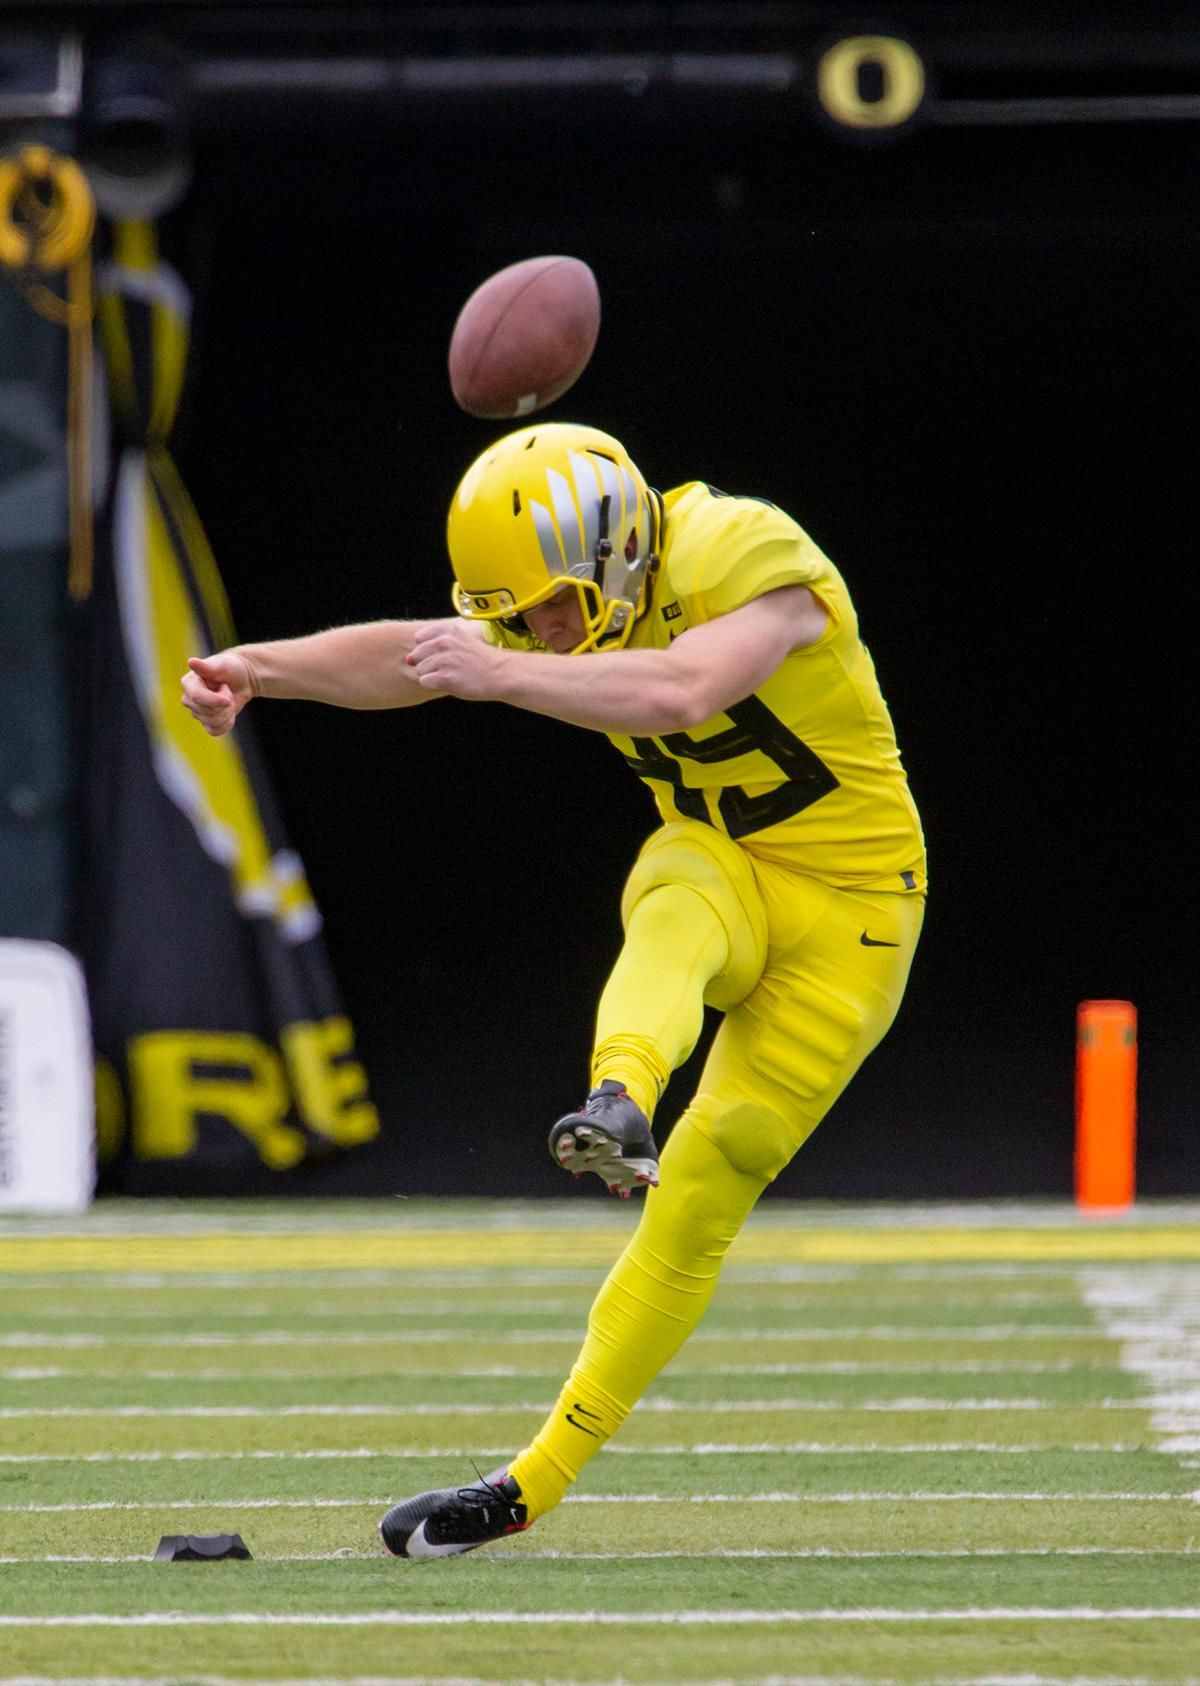 Fighting Ducks kicker Camden Lewis (49) kicks off the ball during Saturday's game. More than 35,000 fans turned out for the University of Oregon's annual spring football game. Mighty Oregon defeated the Fighting Ducks 20 to 13 during the Saturday afternoon game at Autzen Stadium in Eugene, Ore. on April 20, 2019. [Ben Lonergan for KVAL.com] - KVAL.com